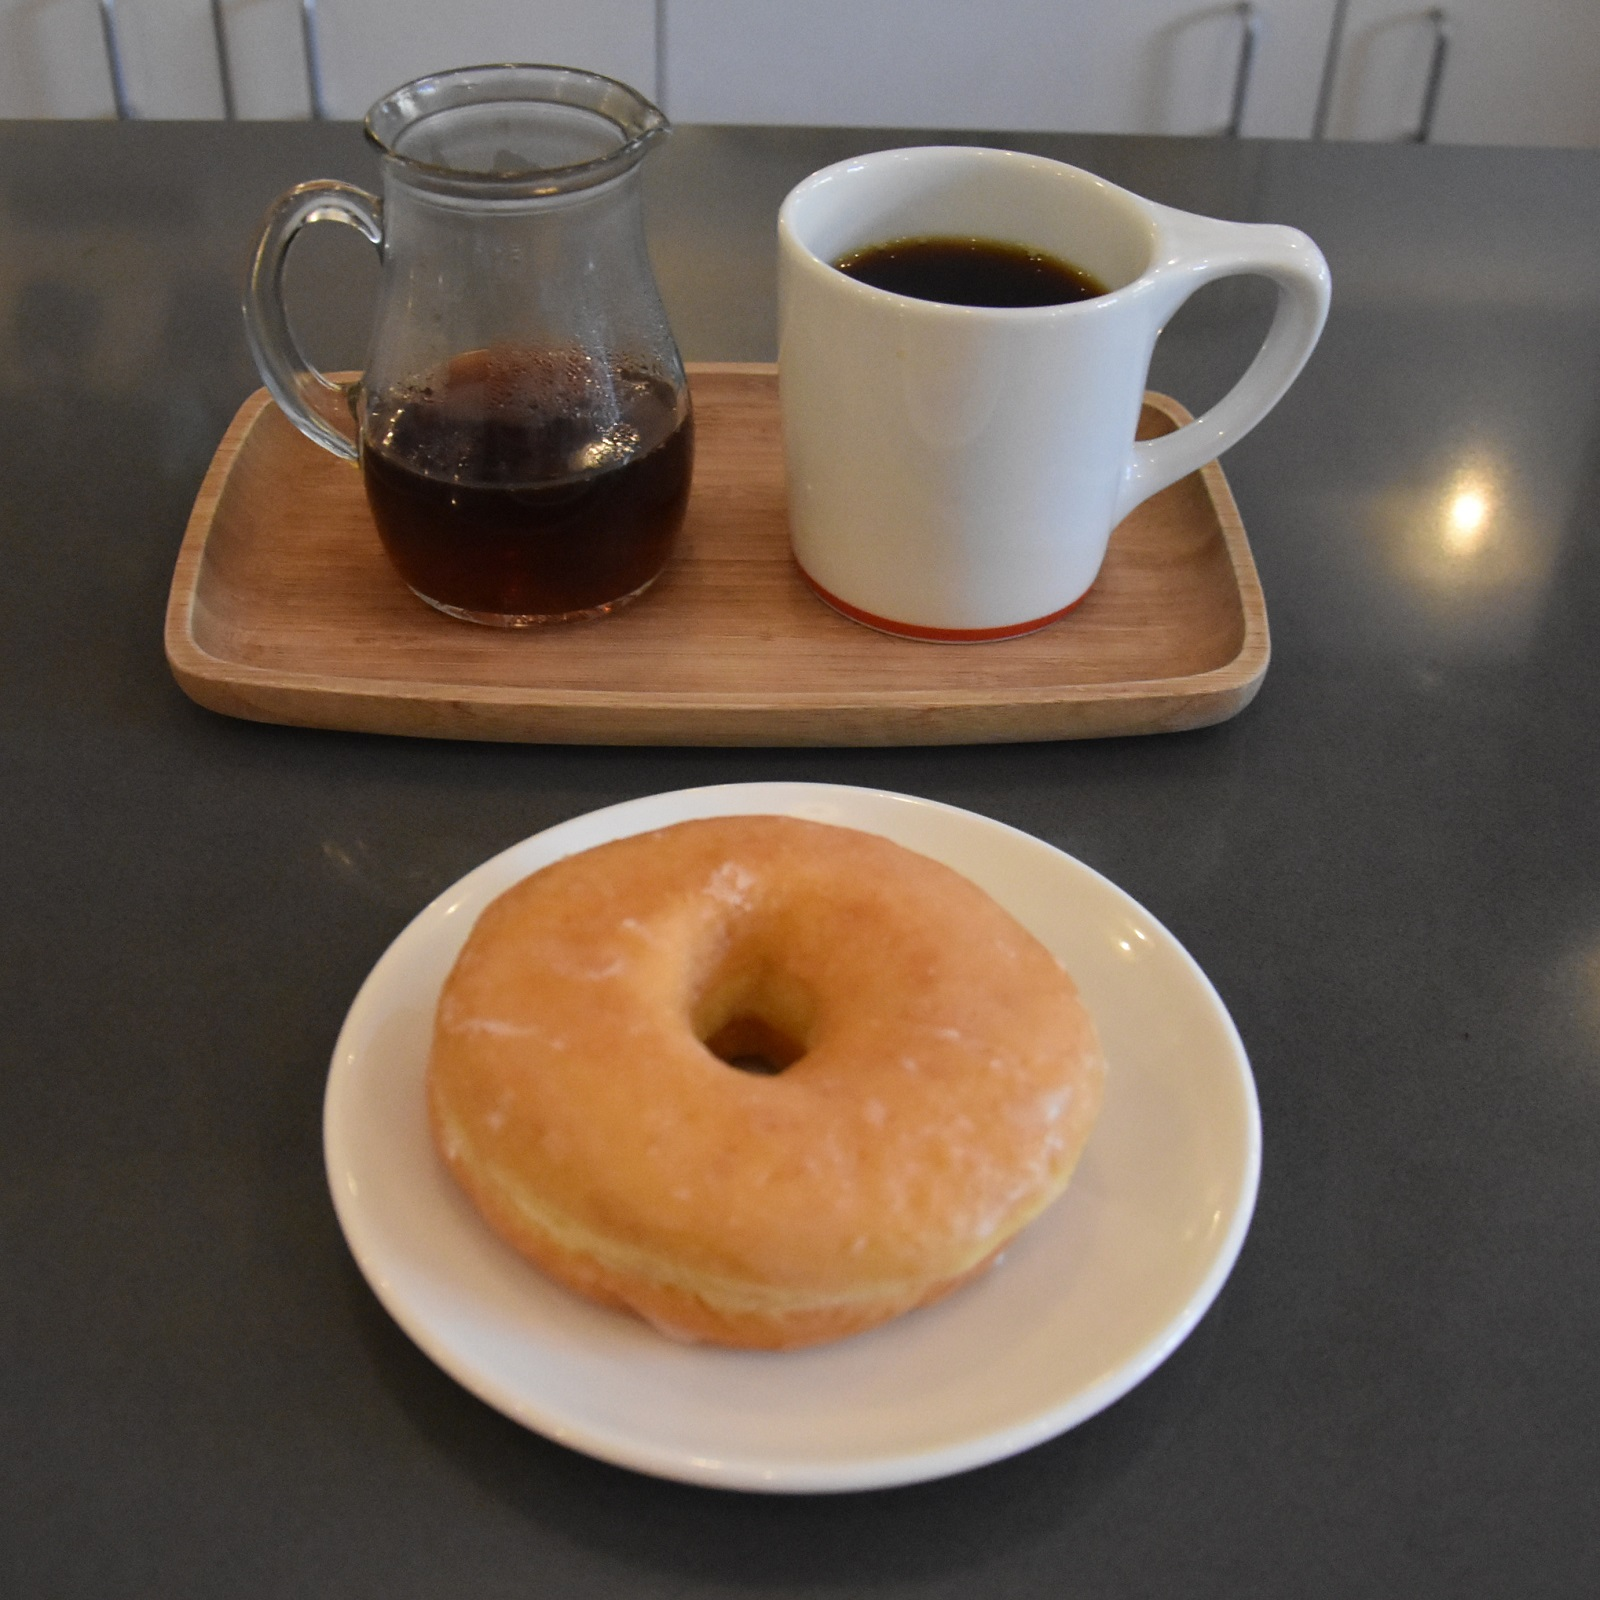 A batch-brew of an El Salvador single-origin, served in a carafe with a mug on the side, plus a lovely, honey-glazed doughnut, at Intelligentsia, Logan Square.